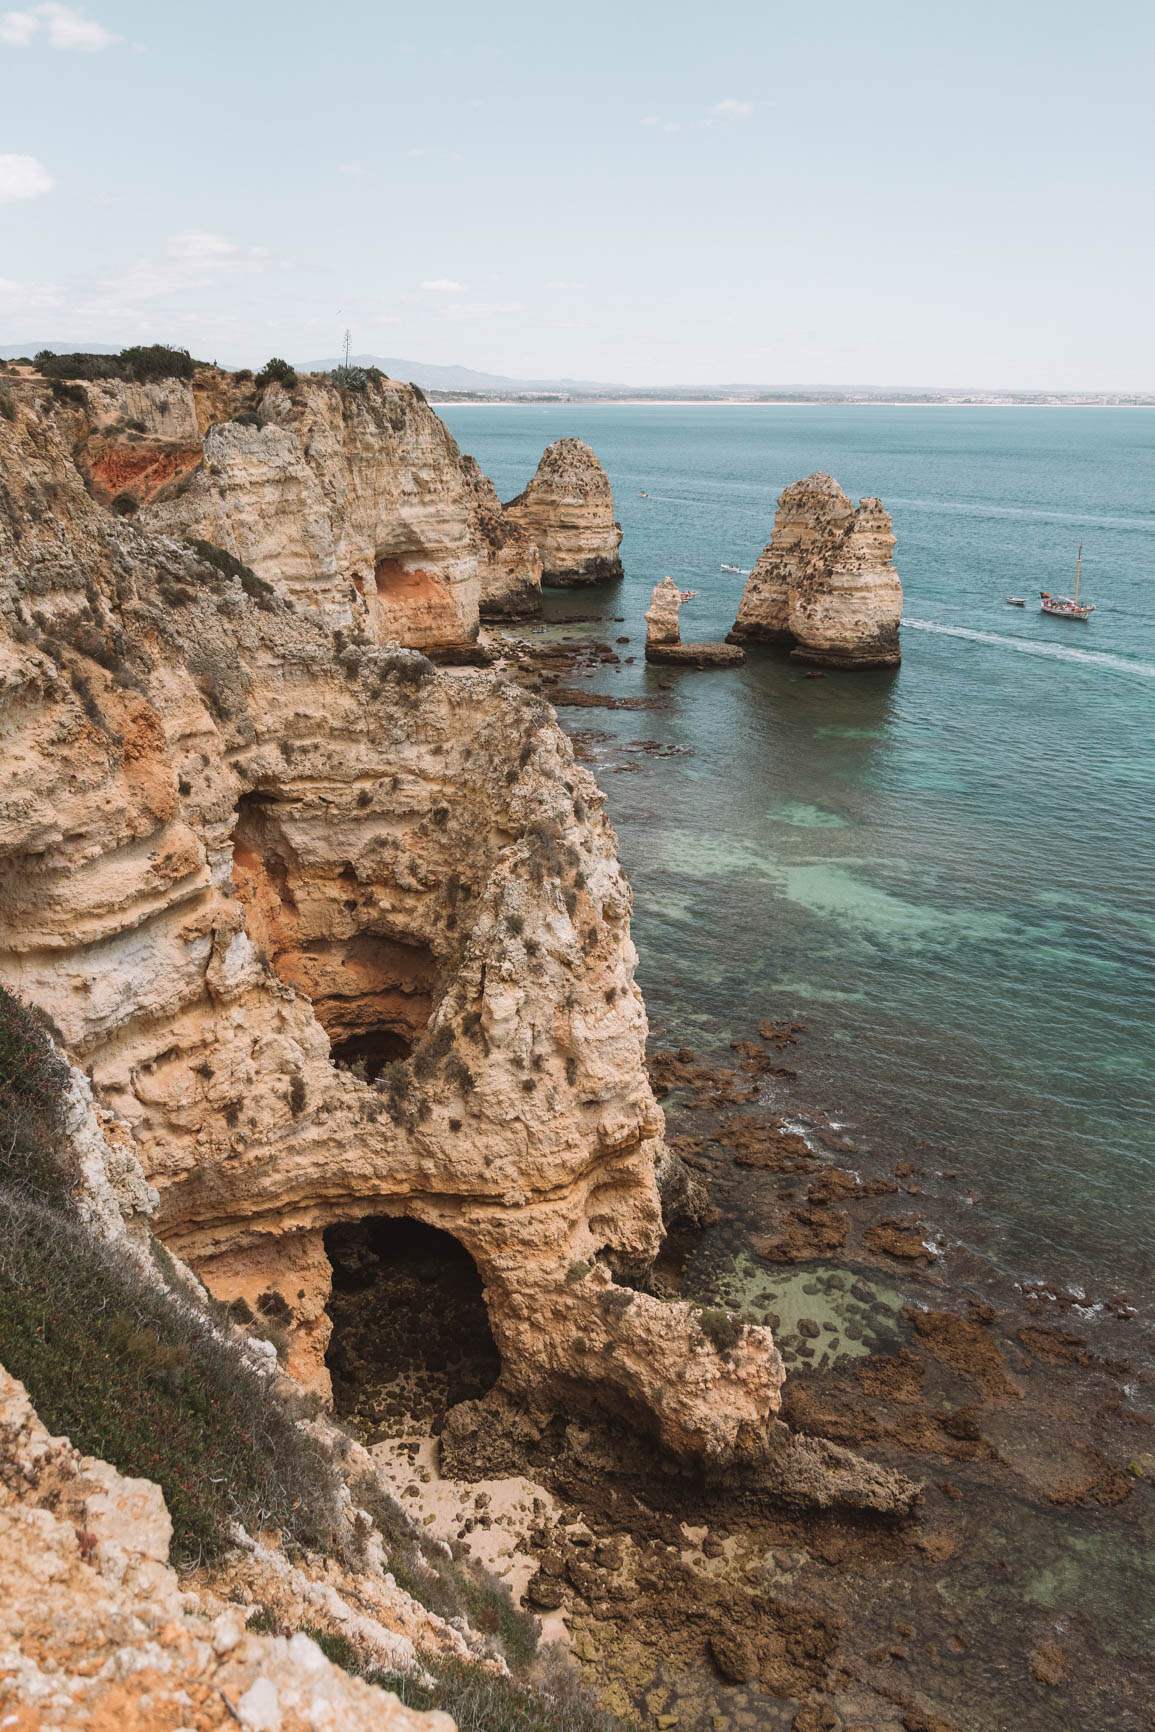 Ponta da Piedade Lagos Portugal - 3 Day itinerary in Lagos including complete guide to Lagos Algarve #Portugal #Europe